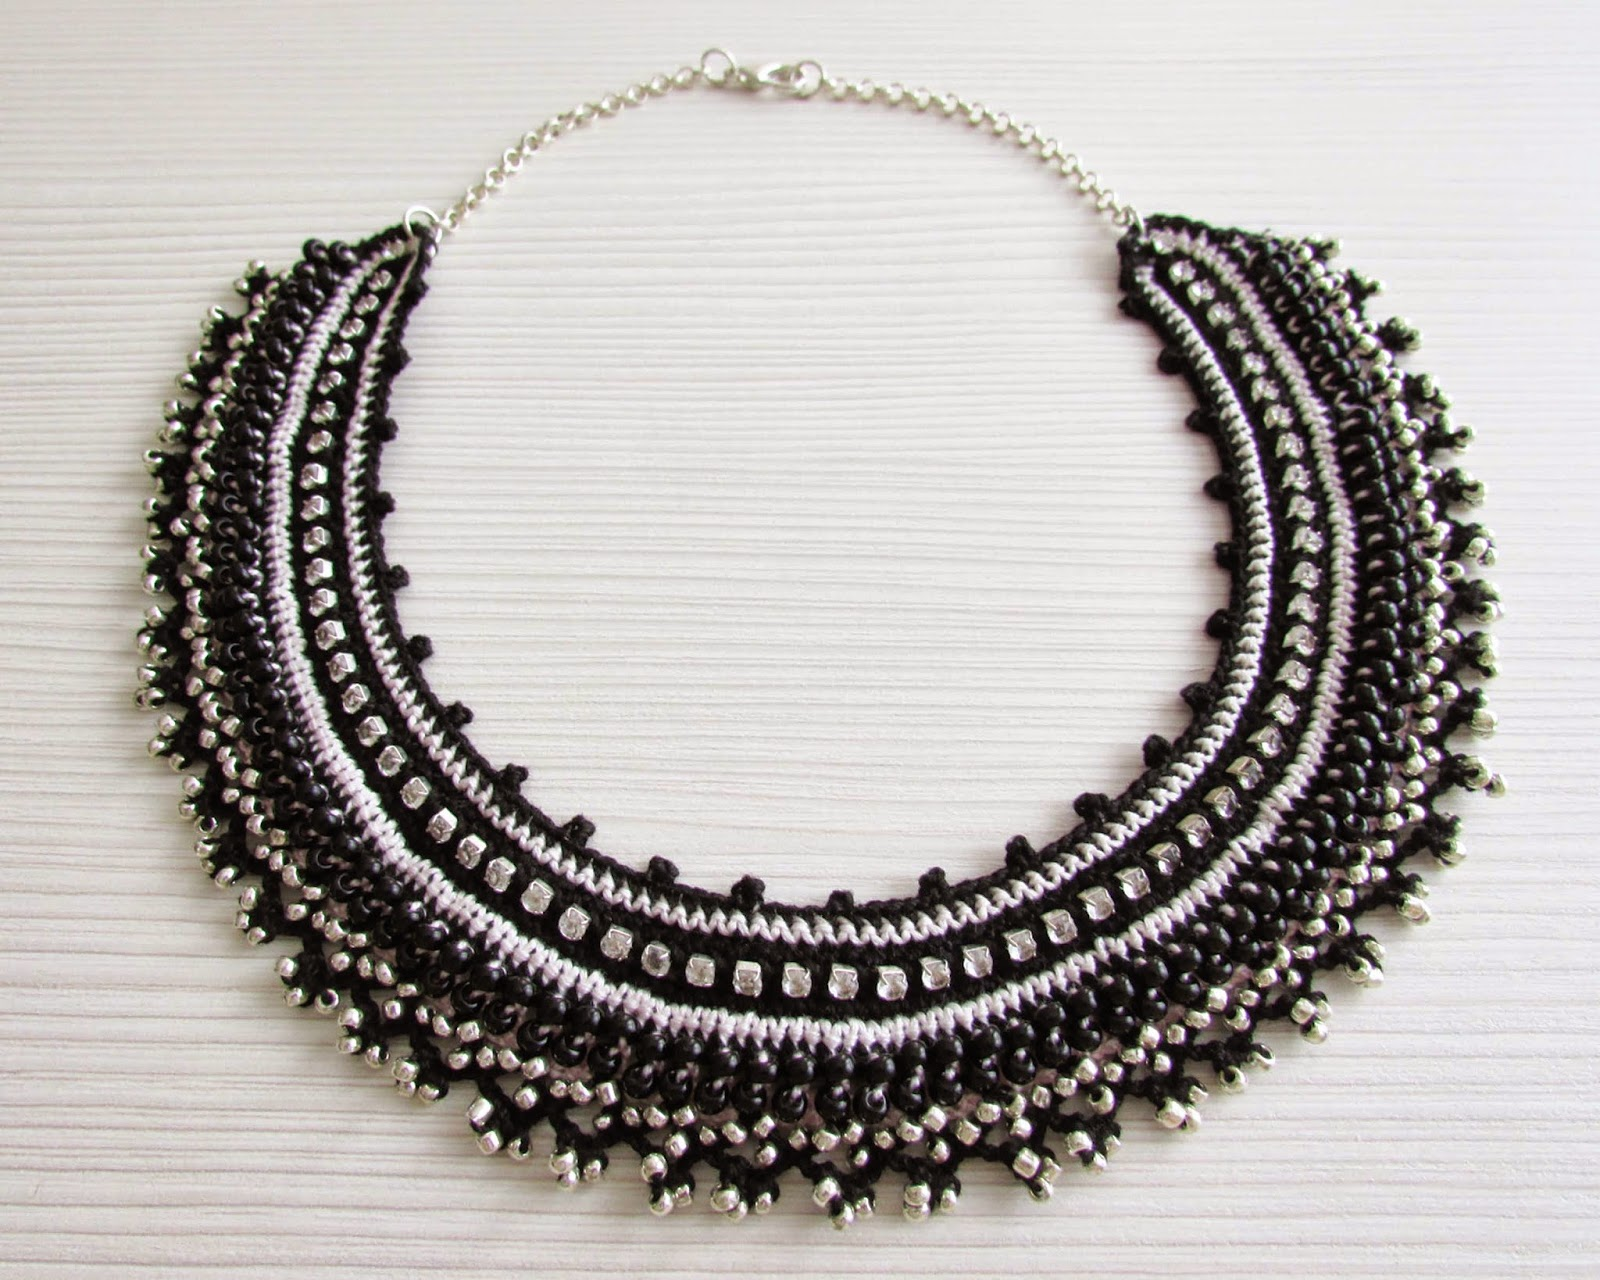 https://www.etsy.com/listing/201243075/black-pink-crochet-collar-choker-chain?ref=shop_home_active_1